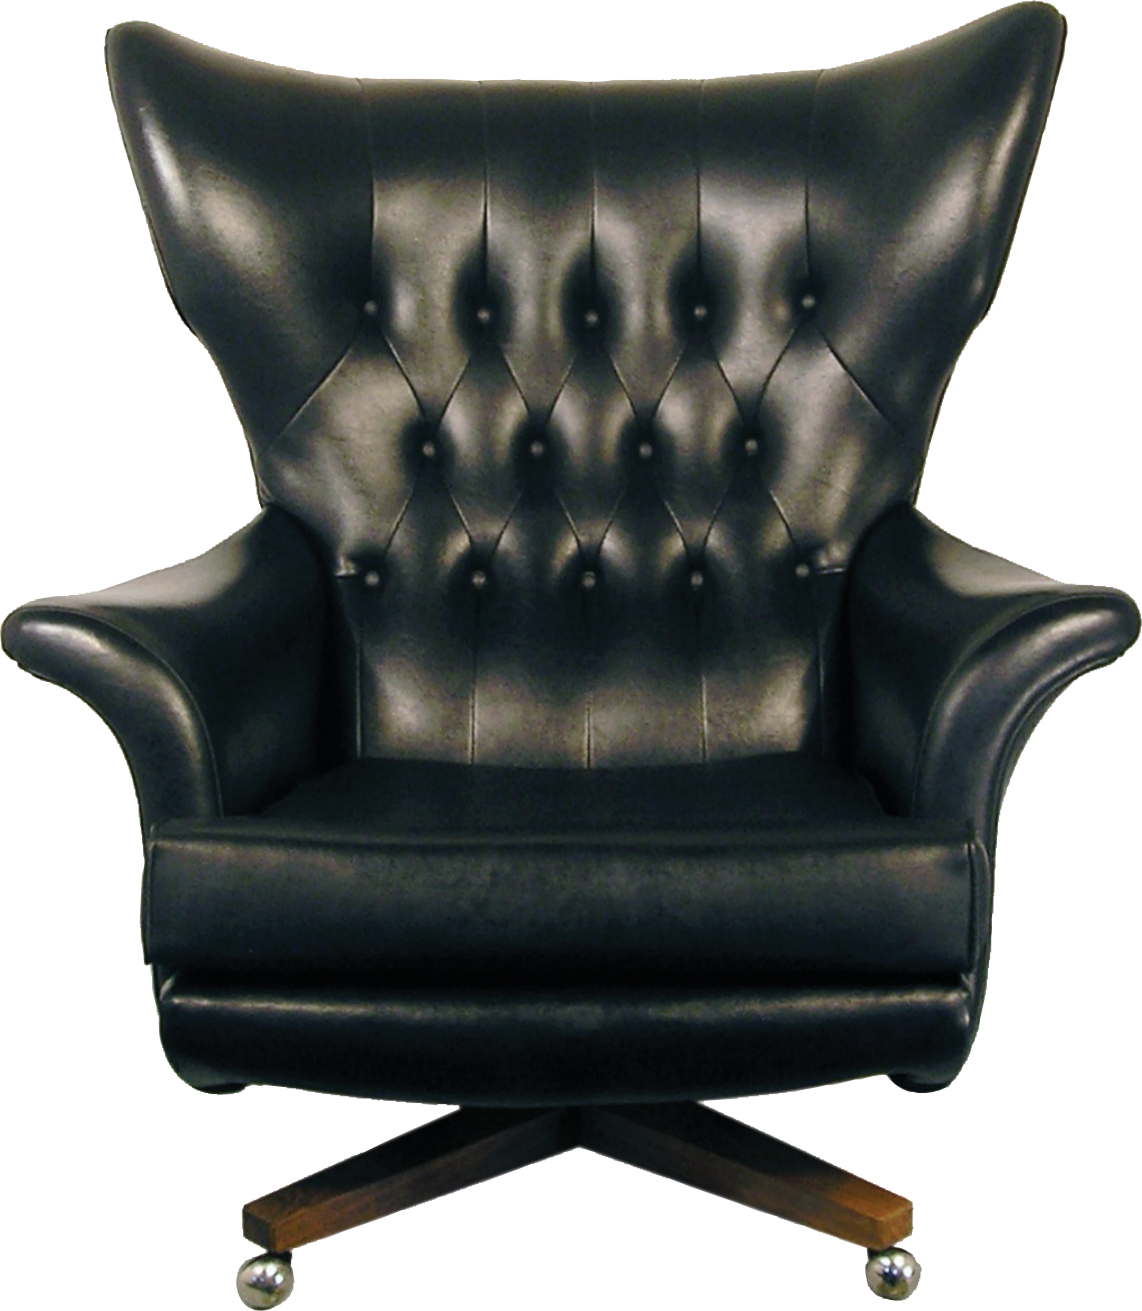 ABOVE: In the early 1960s G-Plan introduced a large, rounded swivel armchair with wings. It was available in several fabrics, but the buttoned  black vinyl version became a classic. They proudly claimed it was  'the most comfortable chair in the world'.